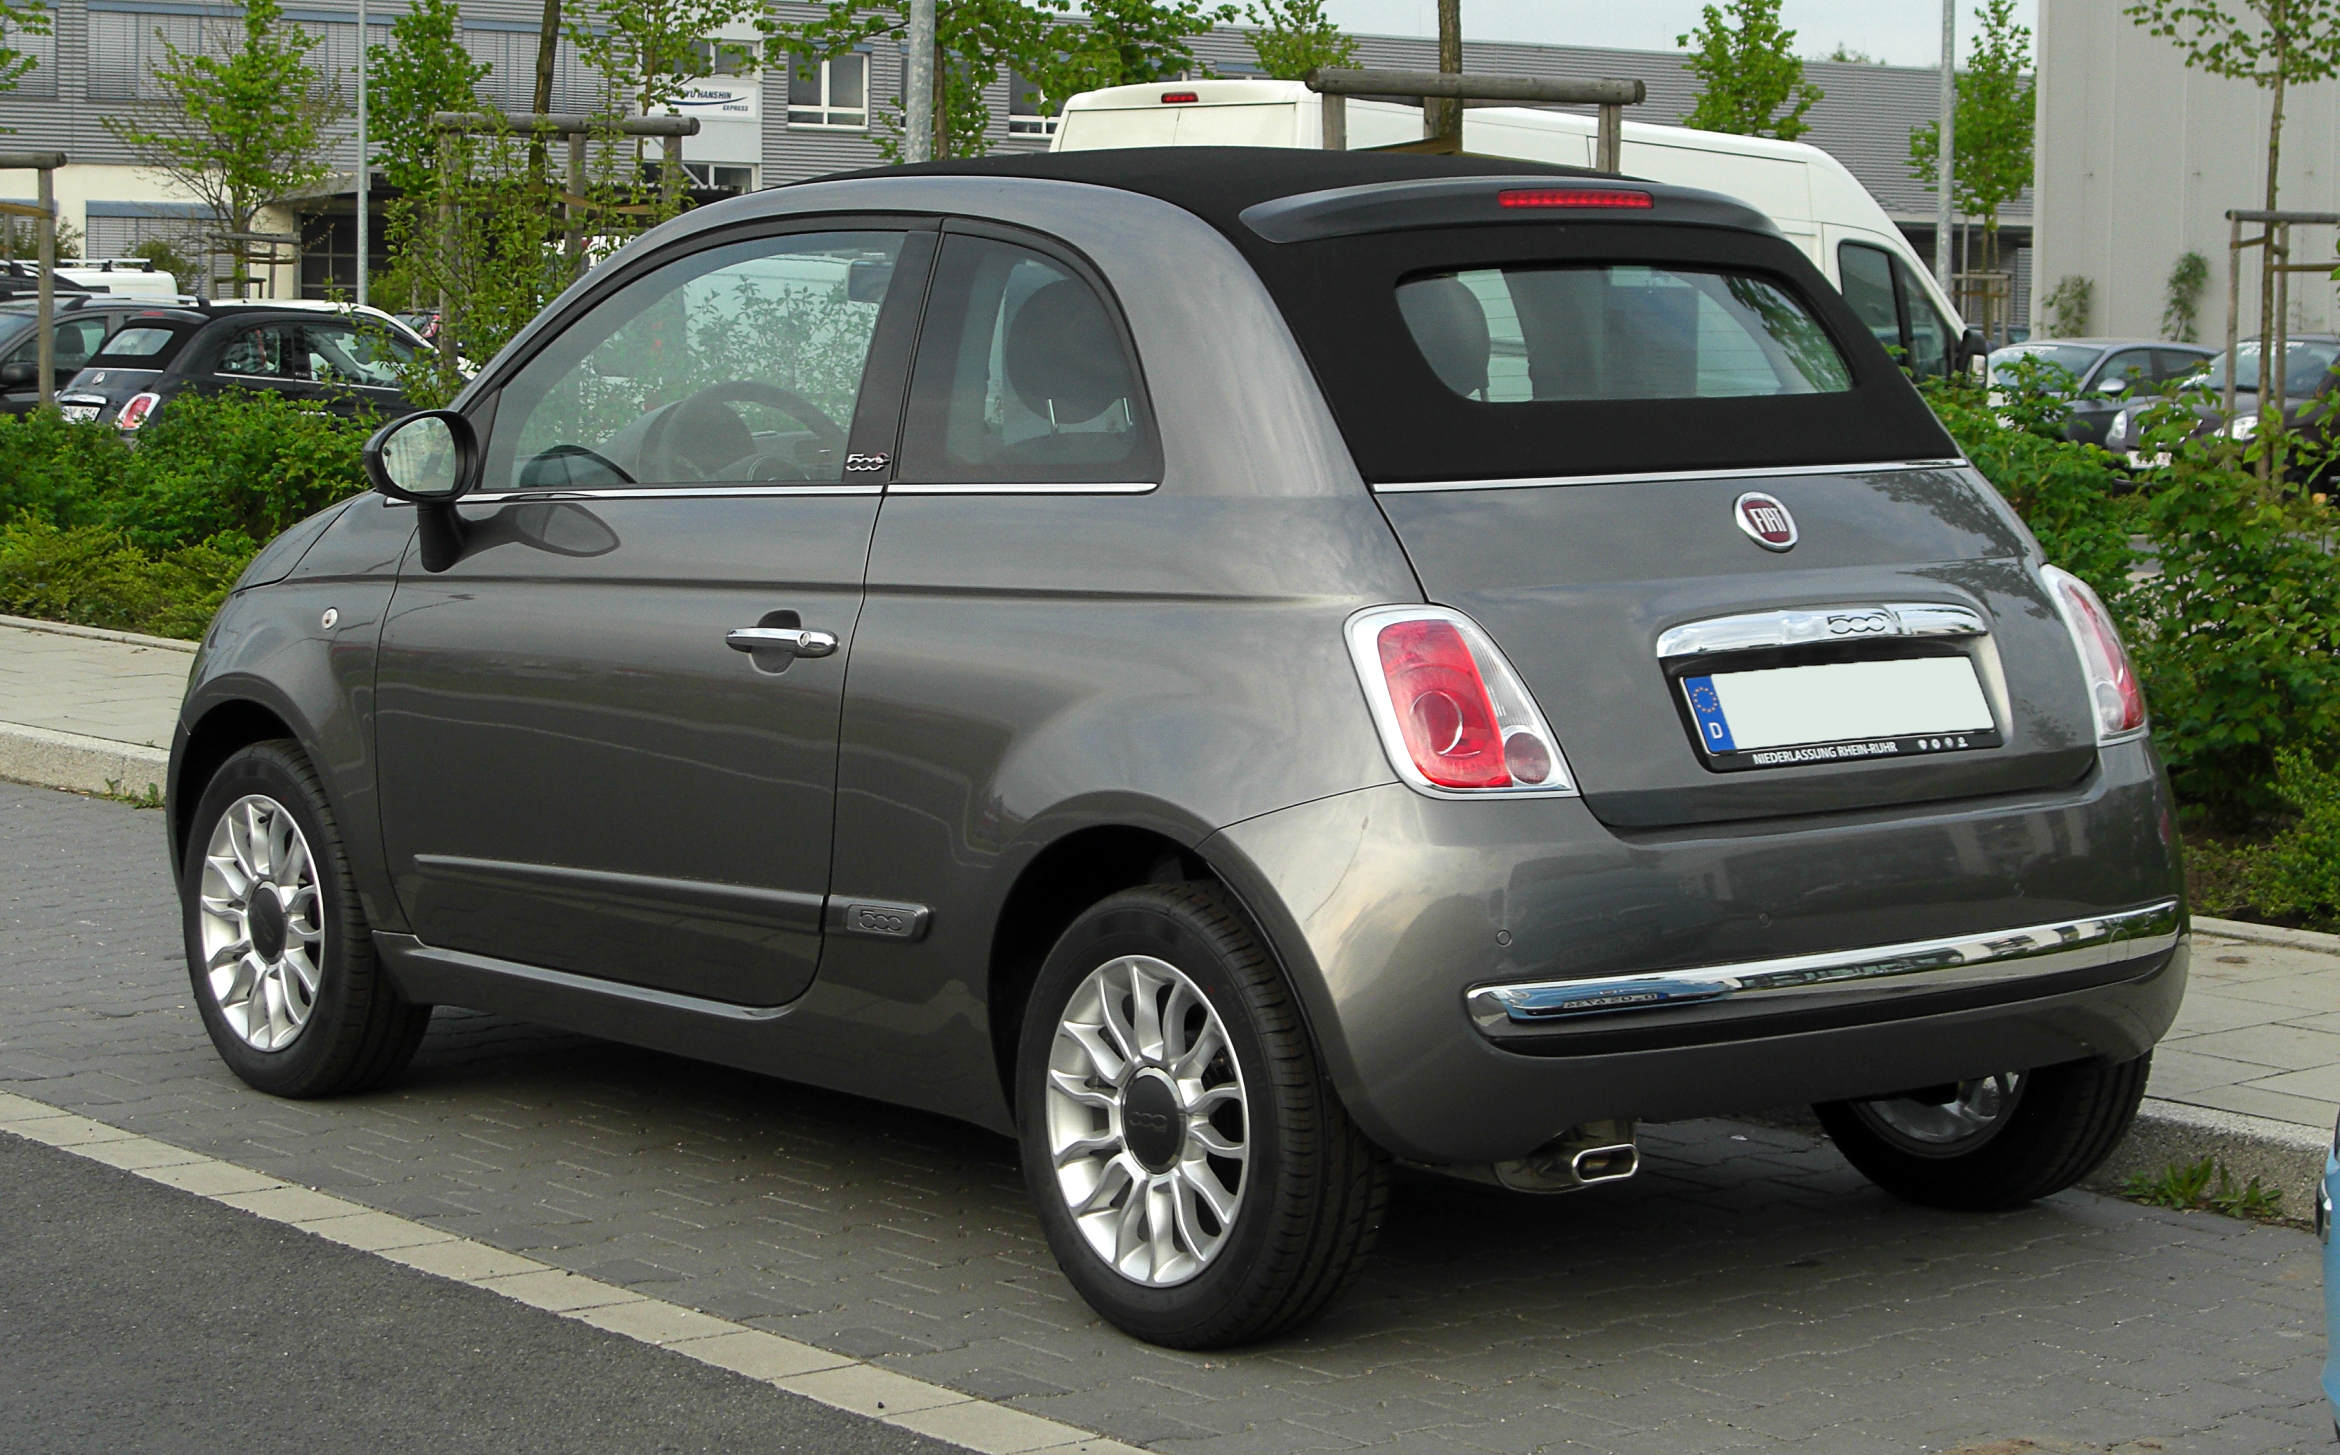 file fiat 500c 1 2 8v lounge heckansicht 16 april 2011 d wikimedia commons. Black Bedroom Furniture Sets. Home Design Ideas